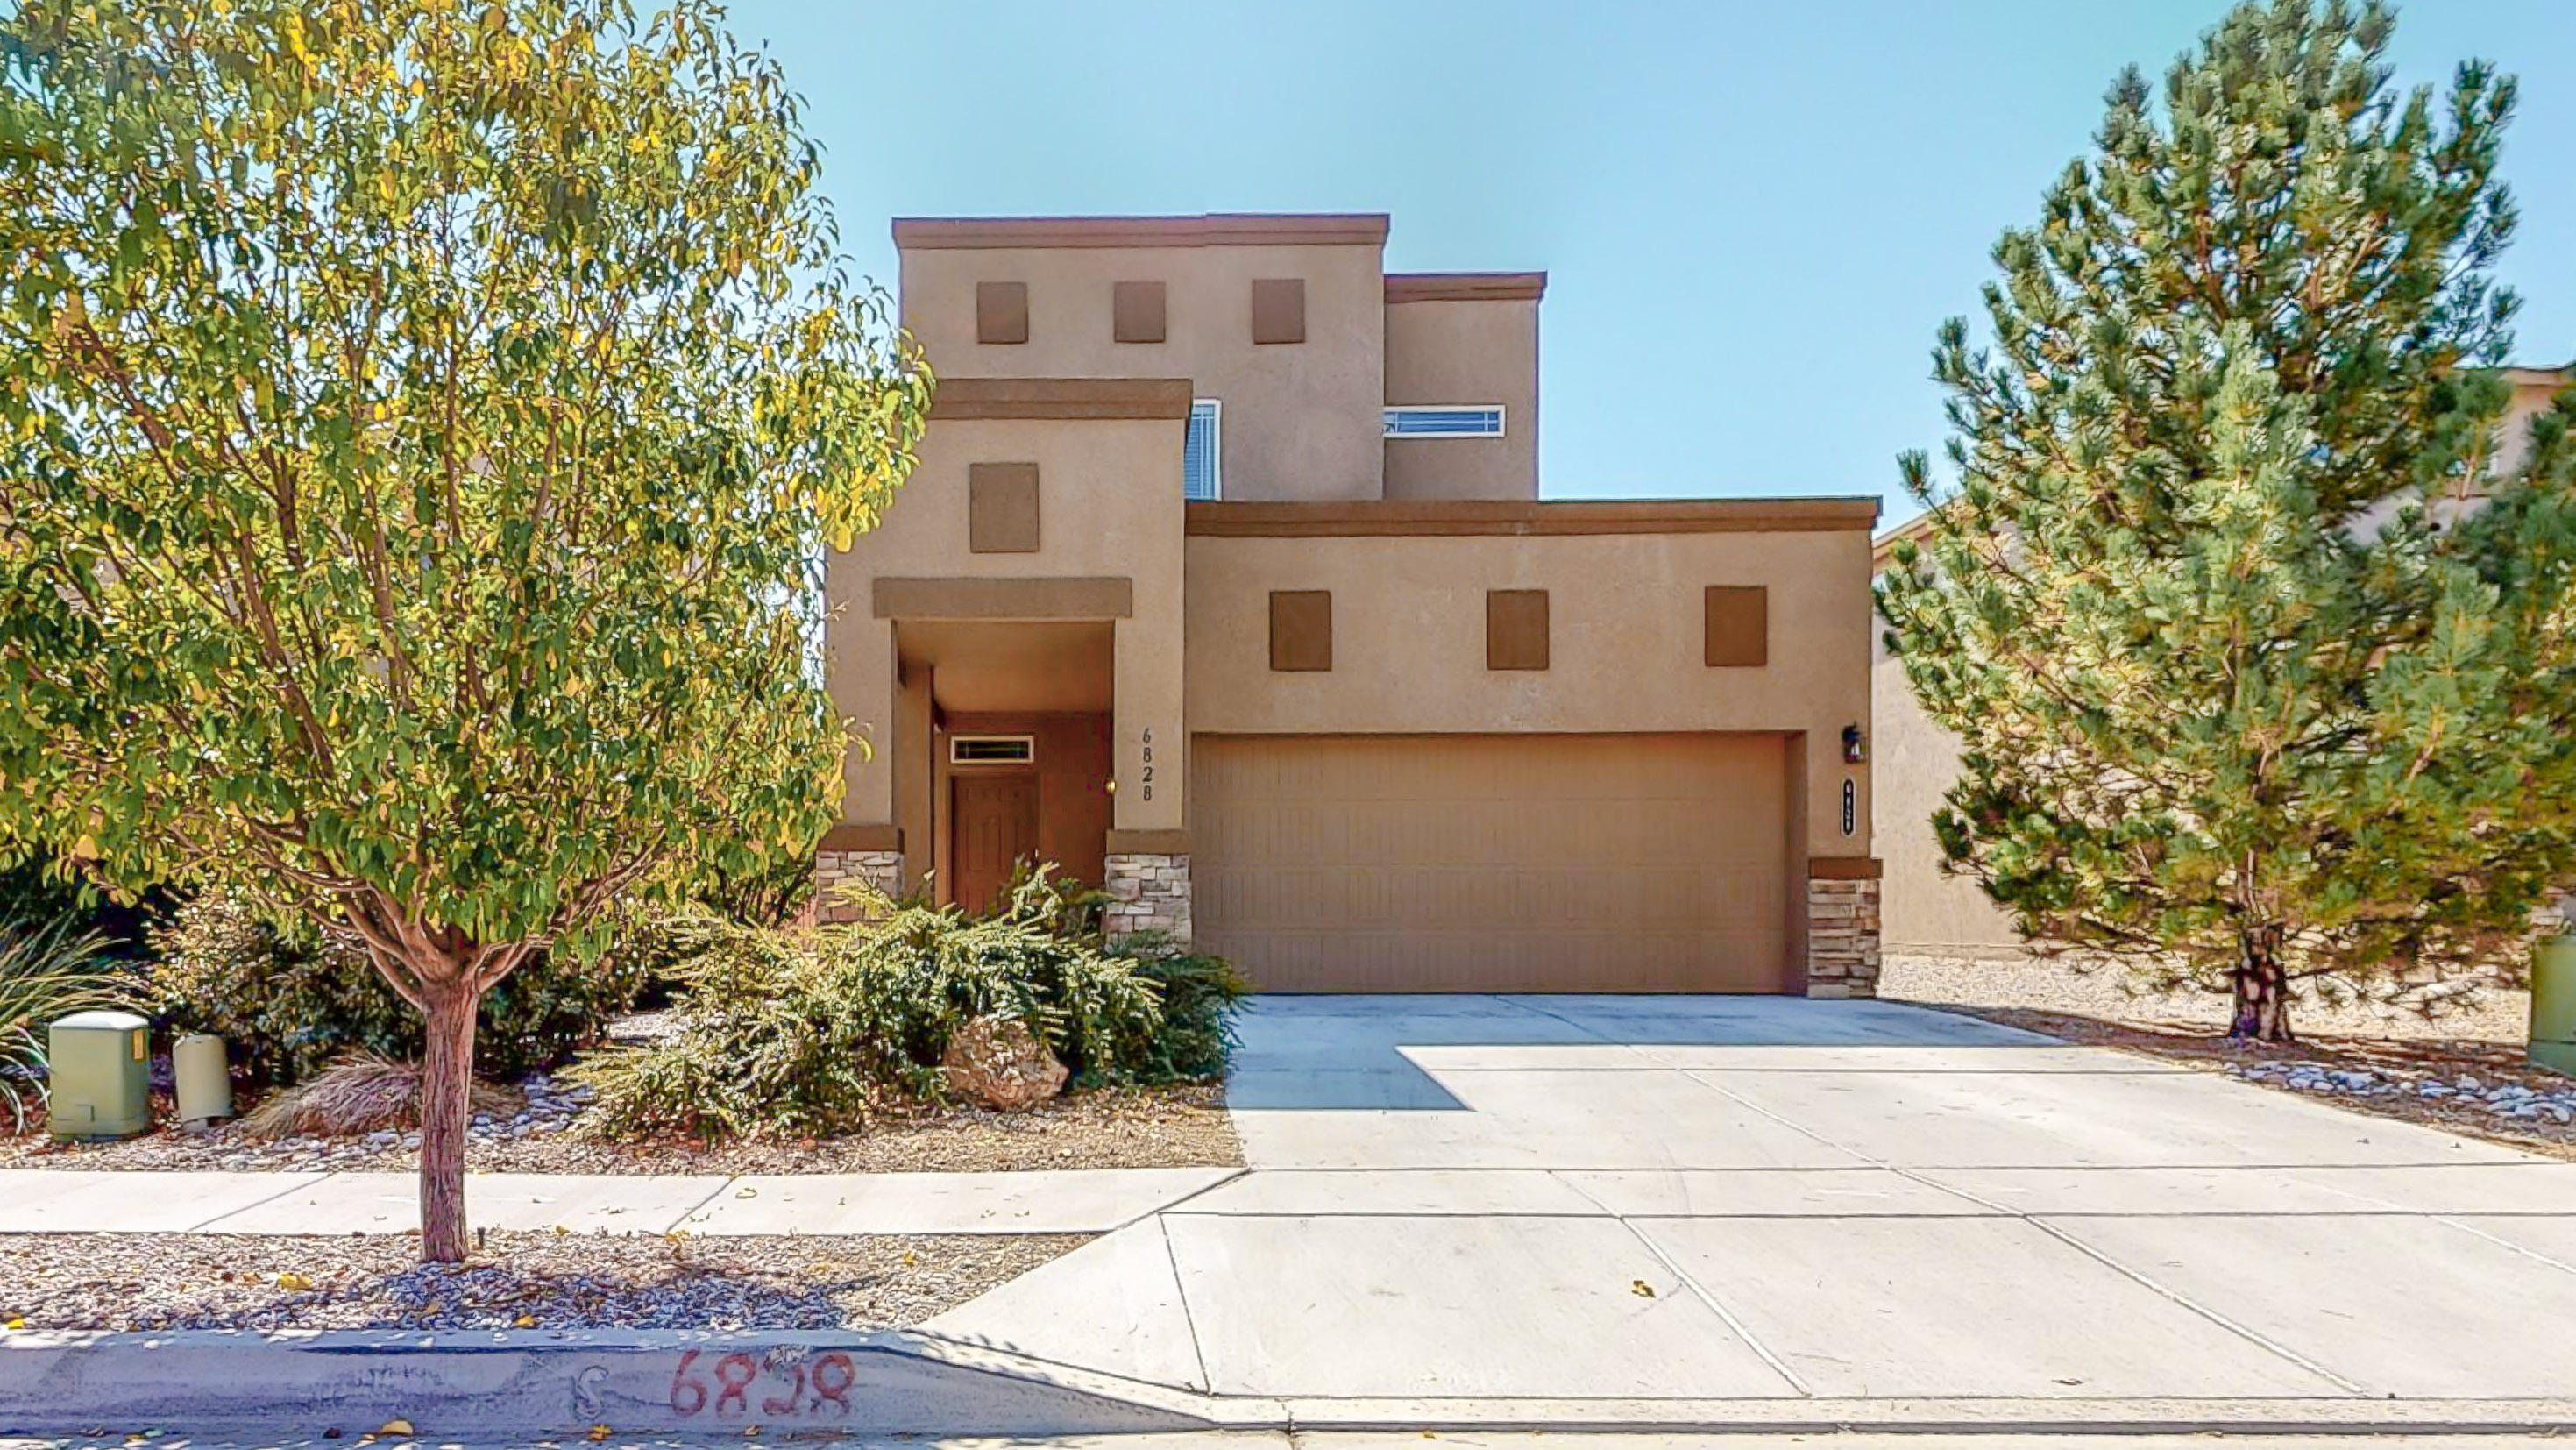 DR Horton two-story home featuring Green Build New Mexico Silver level! Great open floor, large living room that opens to the kitchen with an island and eating bar. Must see Interior, including the Executive Cabinet Layout in the kitchen, Stainless steel appliances, Extended Cover Porch, and three large bedrooms!   Private Master suite with walk-in closet! The upstairs washer and dryer make laundry day a breeze! Excellent curb appeal with a two-car garage! The backyard is ready for your creativity and has backyard access! Schedule a Private showing or take a virtual walkthrough tour today!